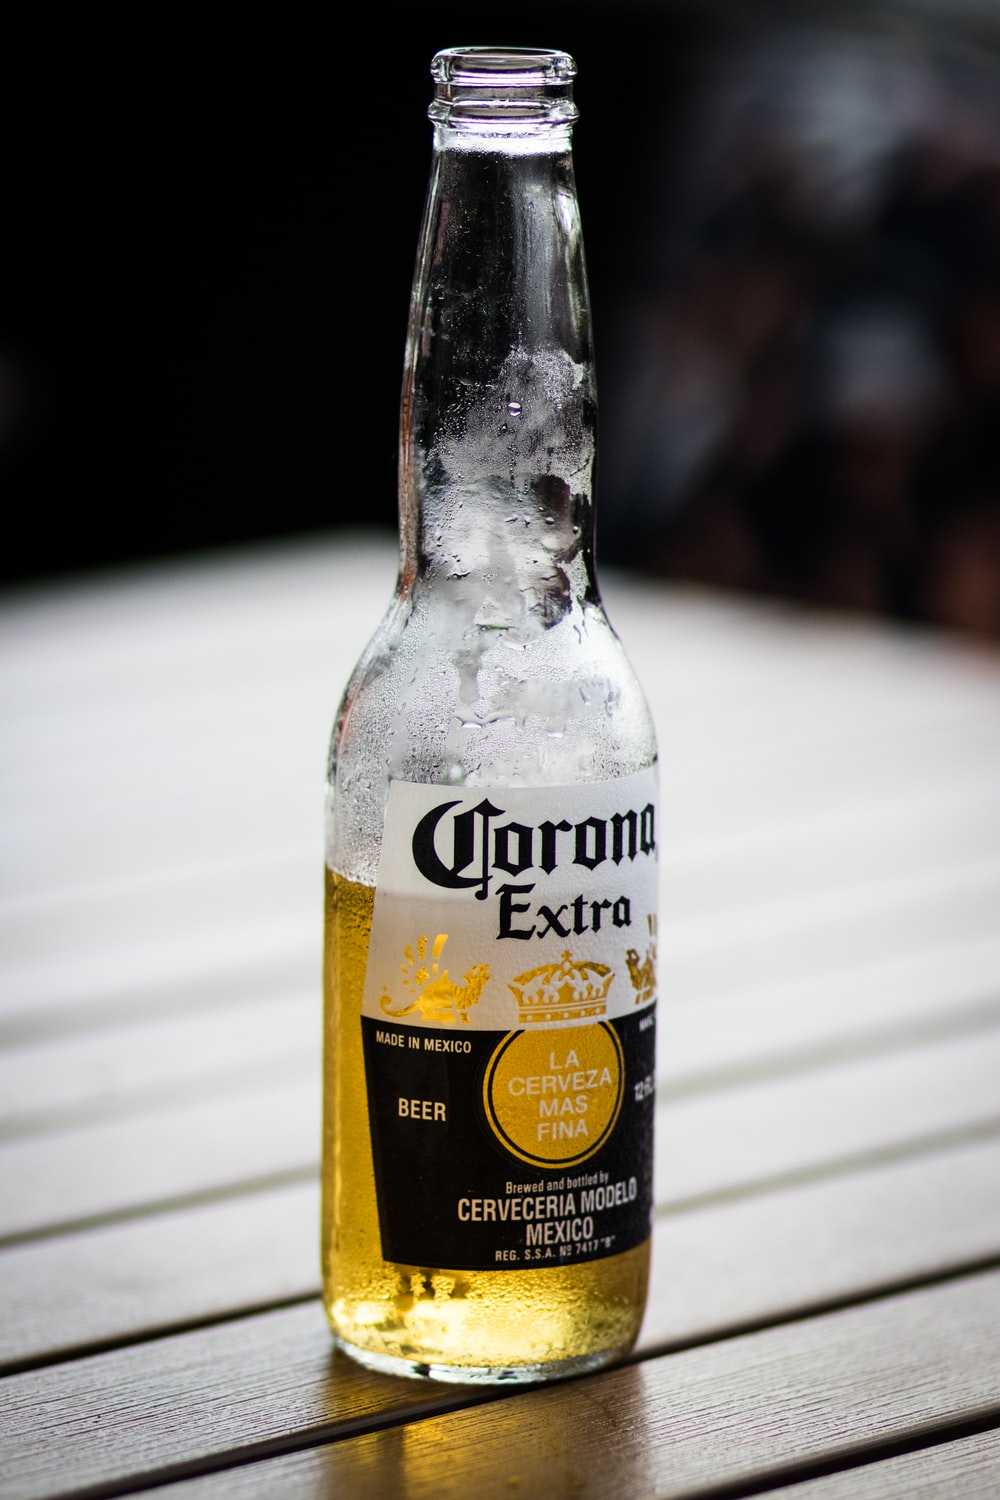 half-filled Corona Extra glass bottle